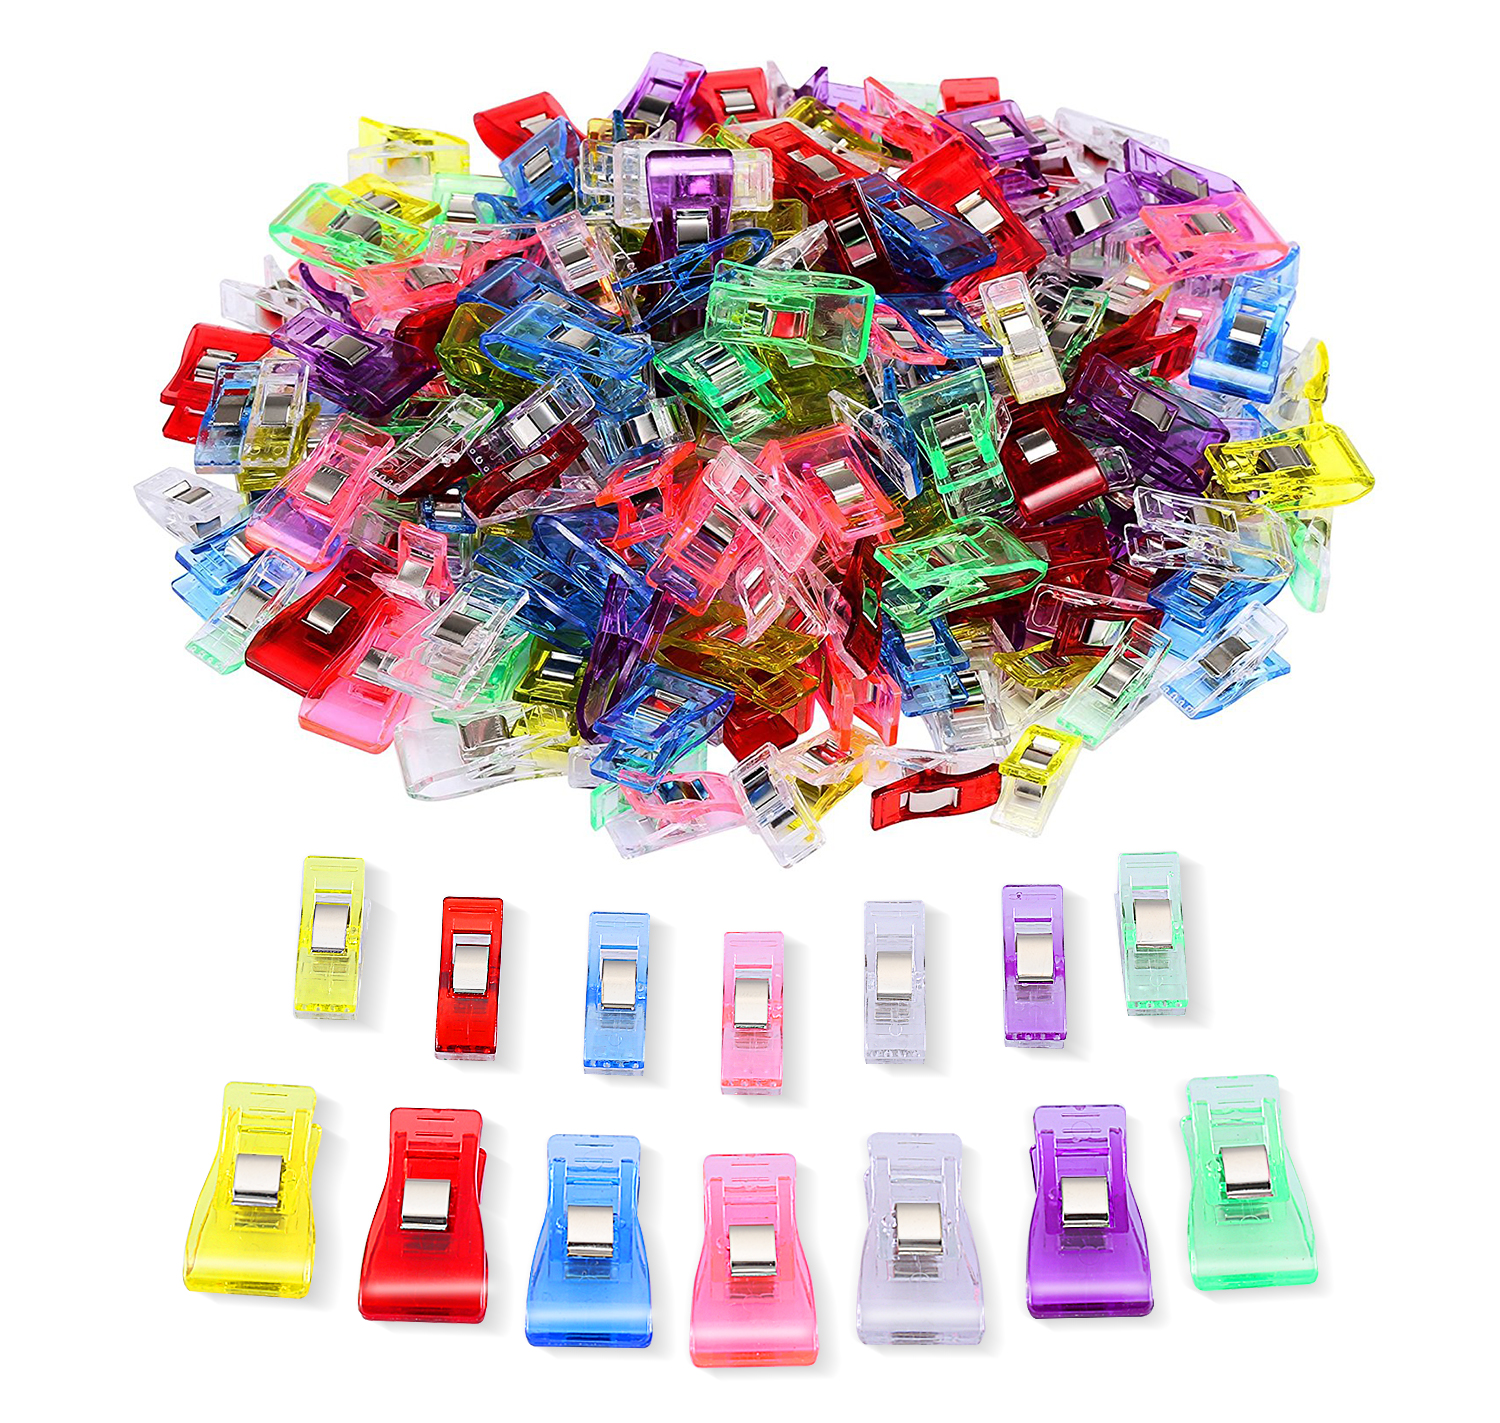 IPOW 100pcs Sewing Crochet Crafting clips Knitting Quilting Plastic Clamps for Home & Office Blinder Wonder Fabric Clip, Assorted Colors, 70 Small 30 Medium